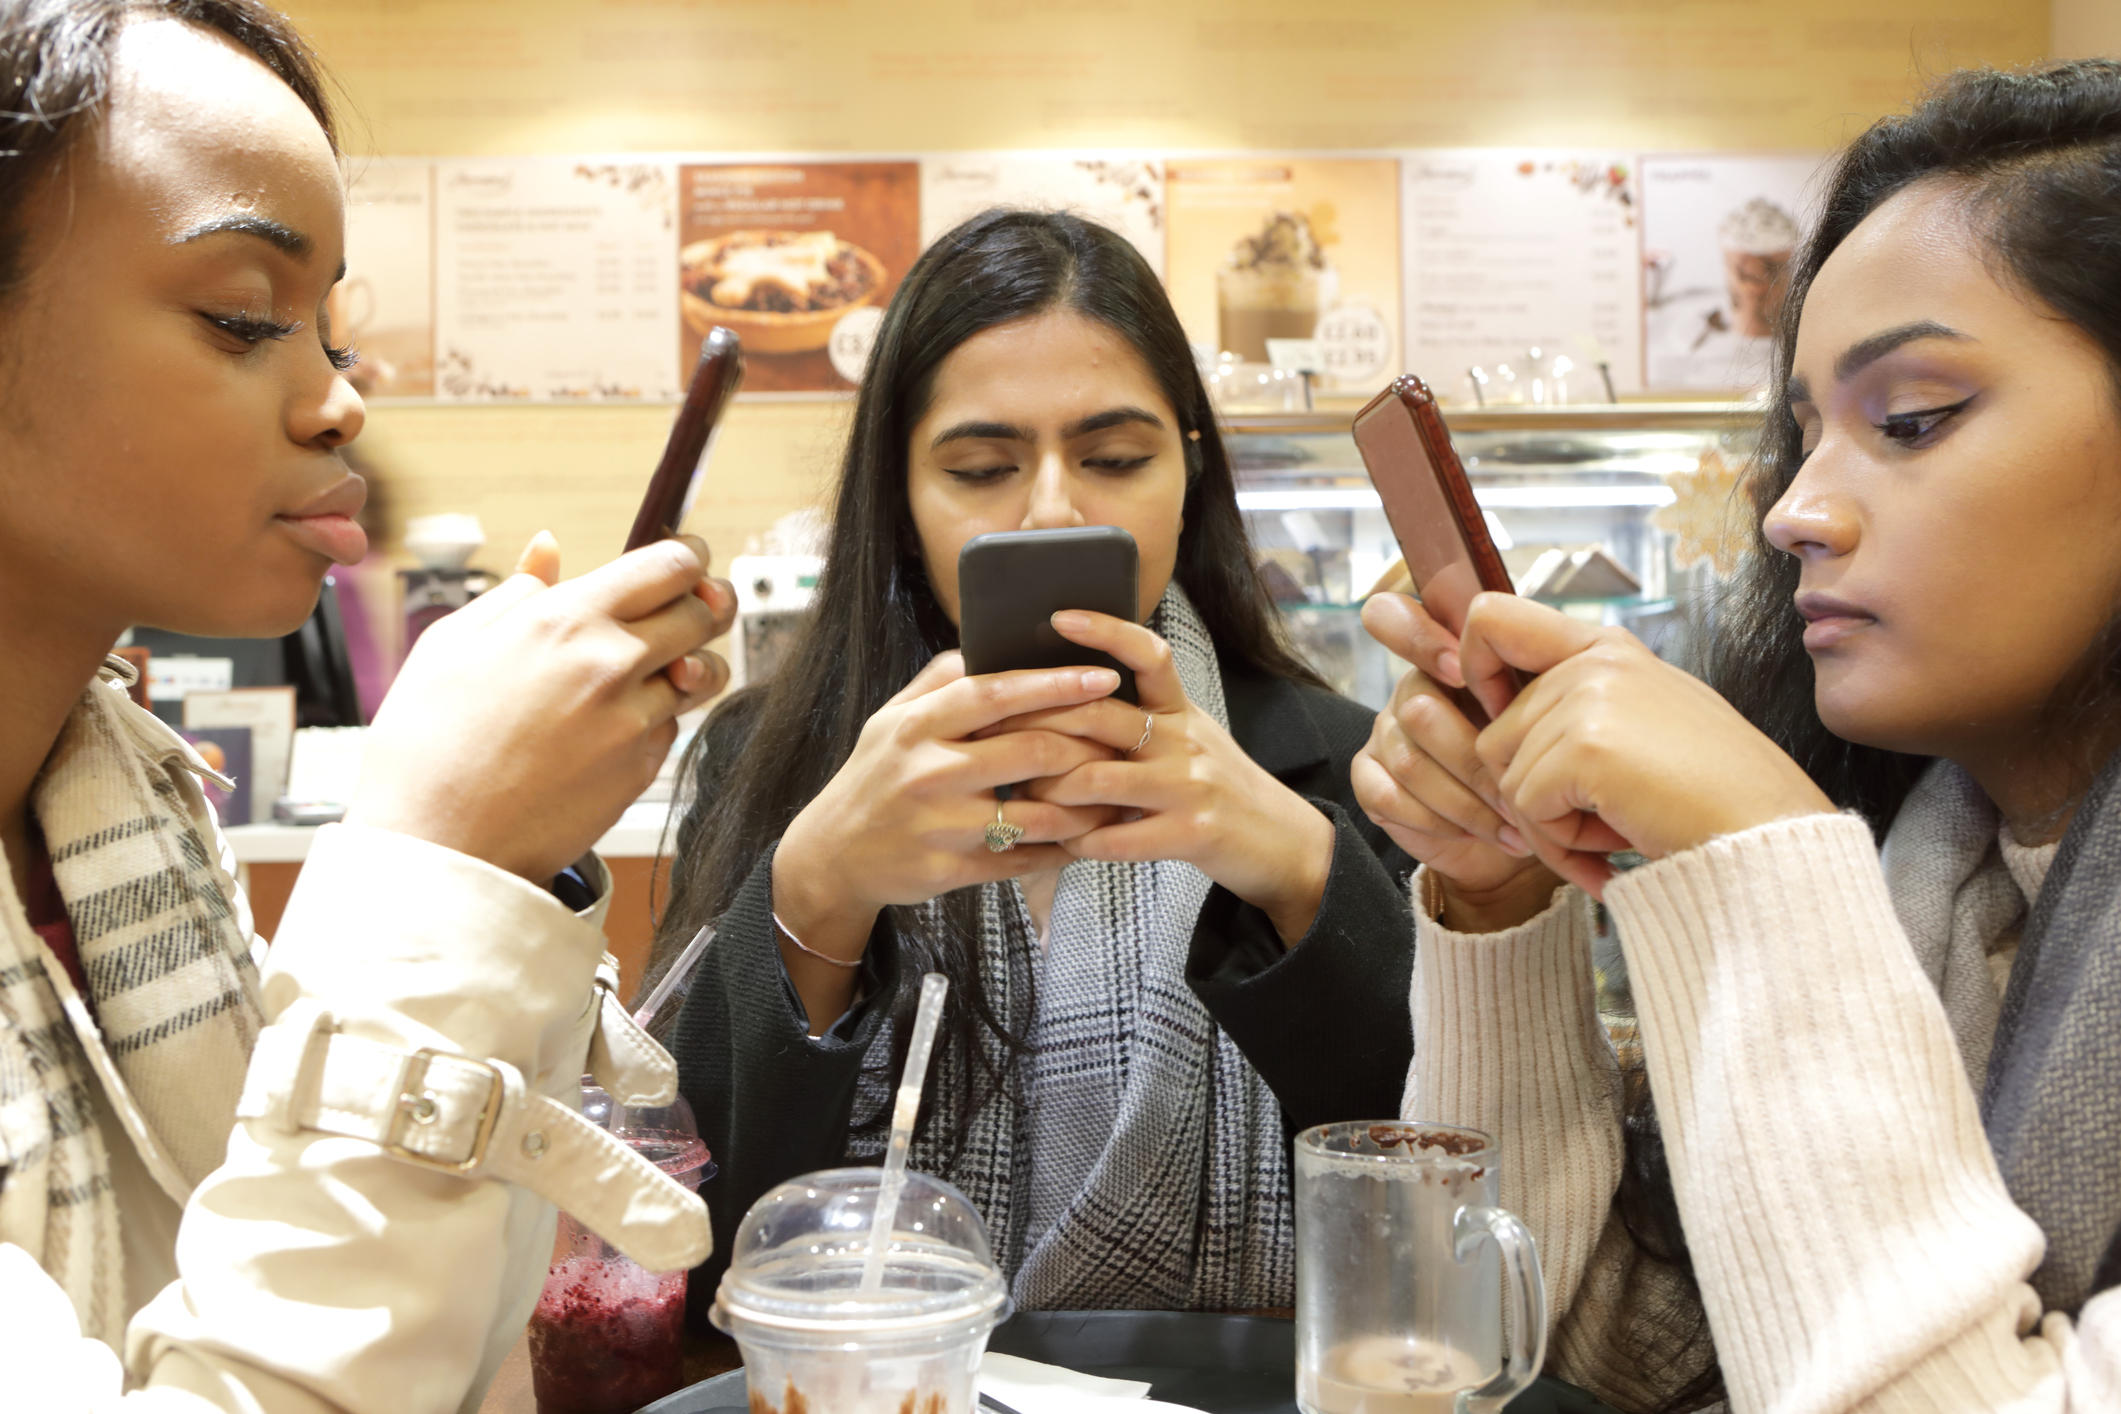 Three young woman on phones in cafe